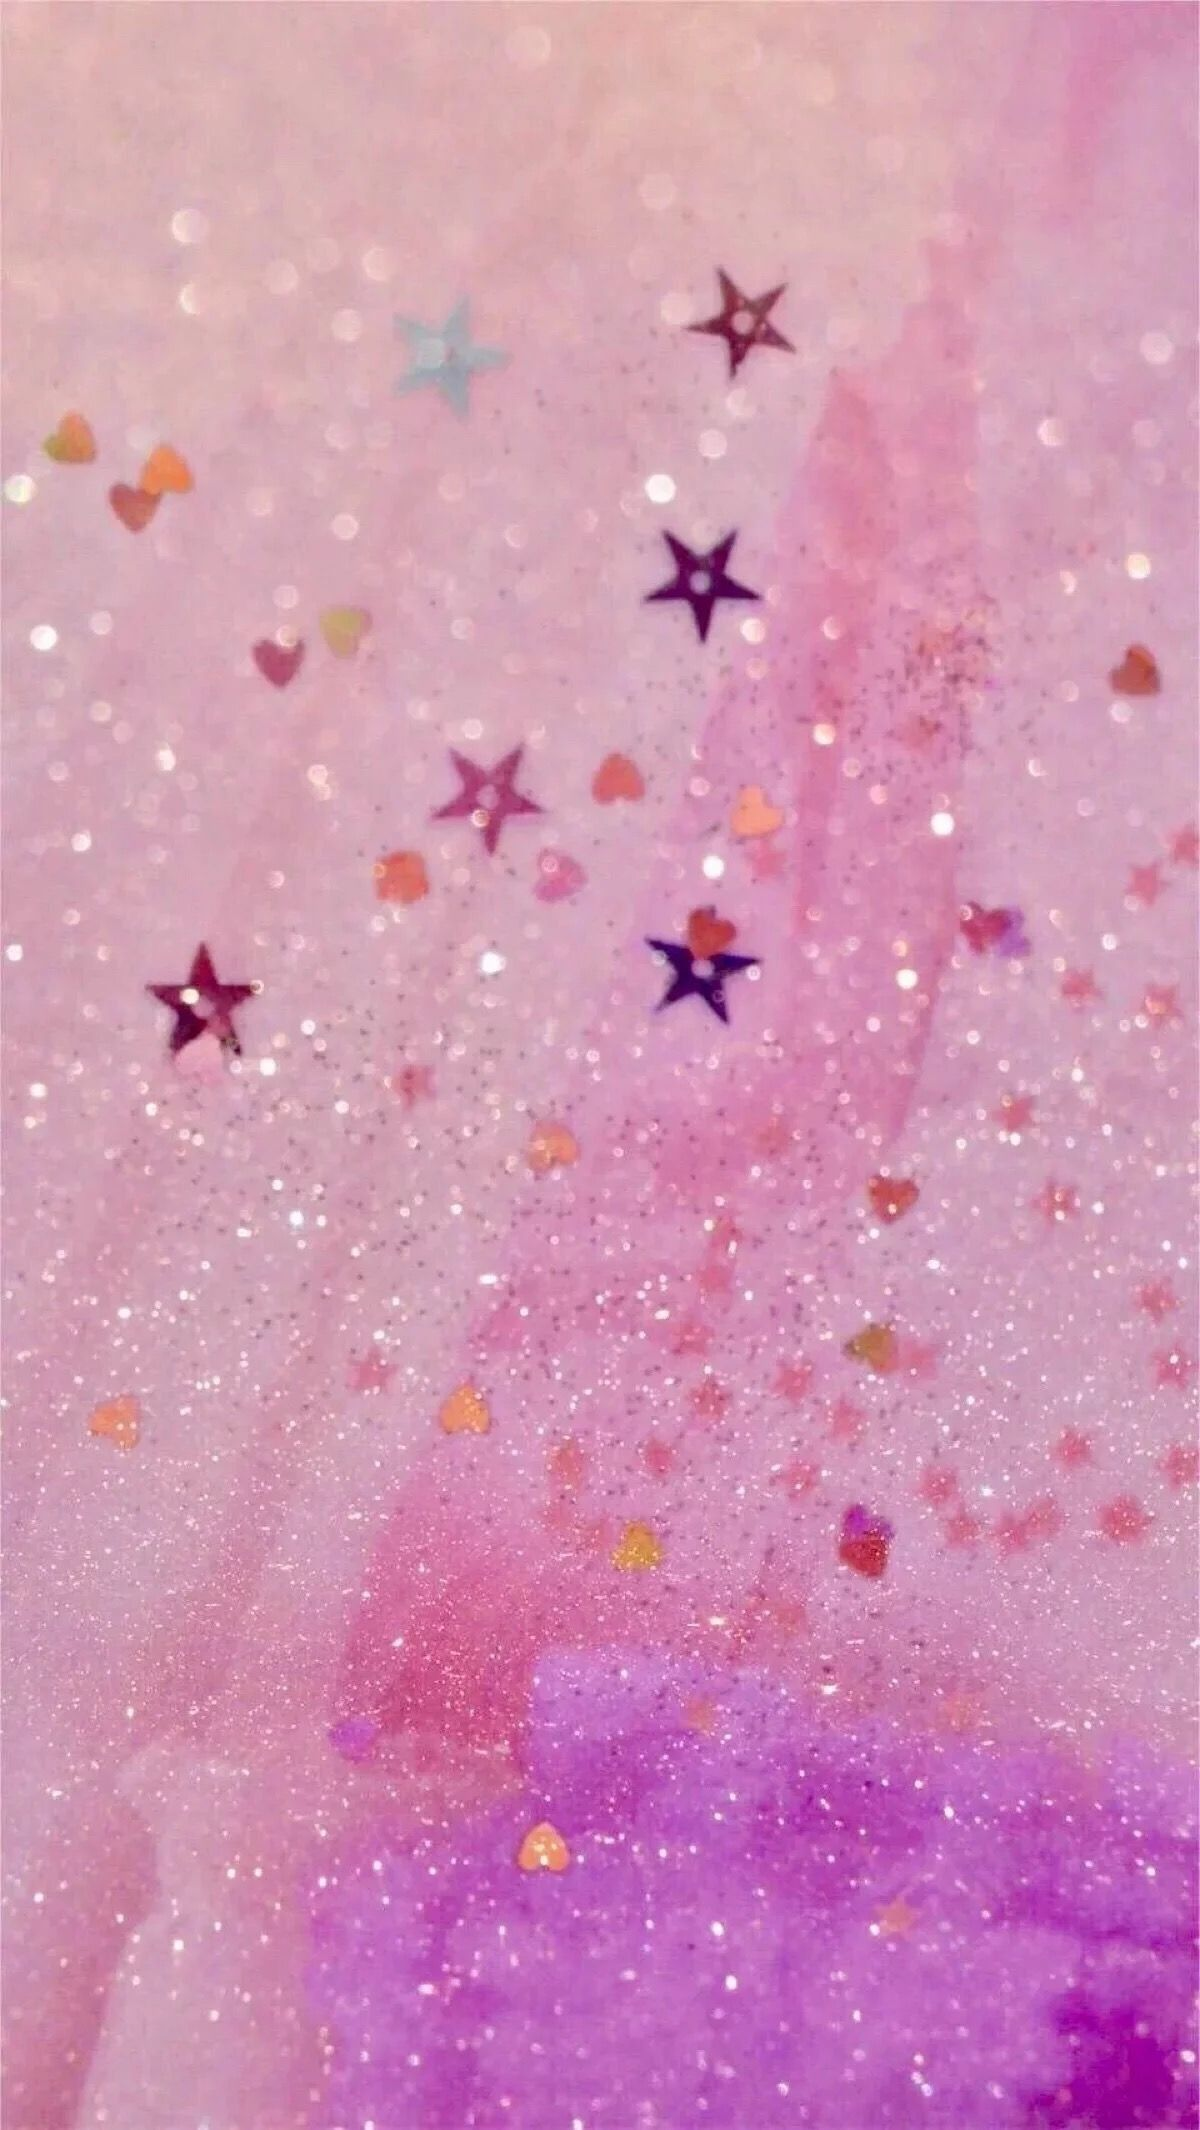 Wallpapers Iphone For Girls Pink Wallpaper Iphone Butterfly Wallpaper Iphone Glitter Wallpaper